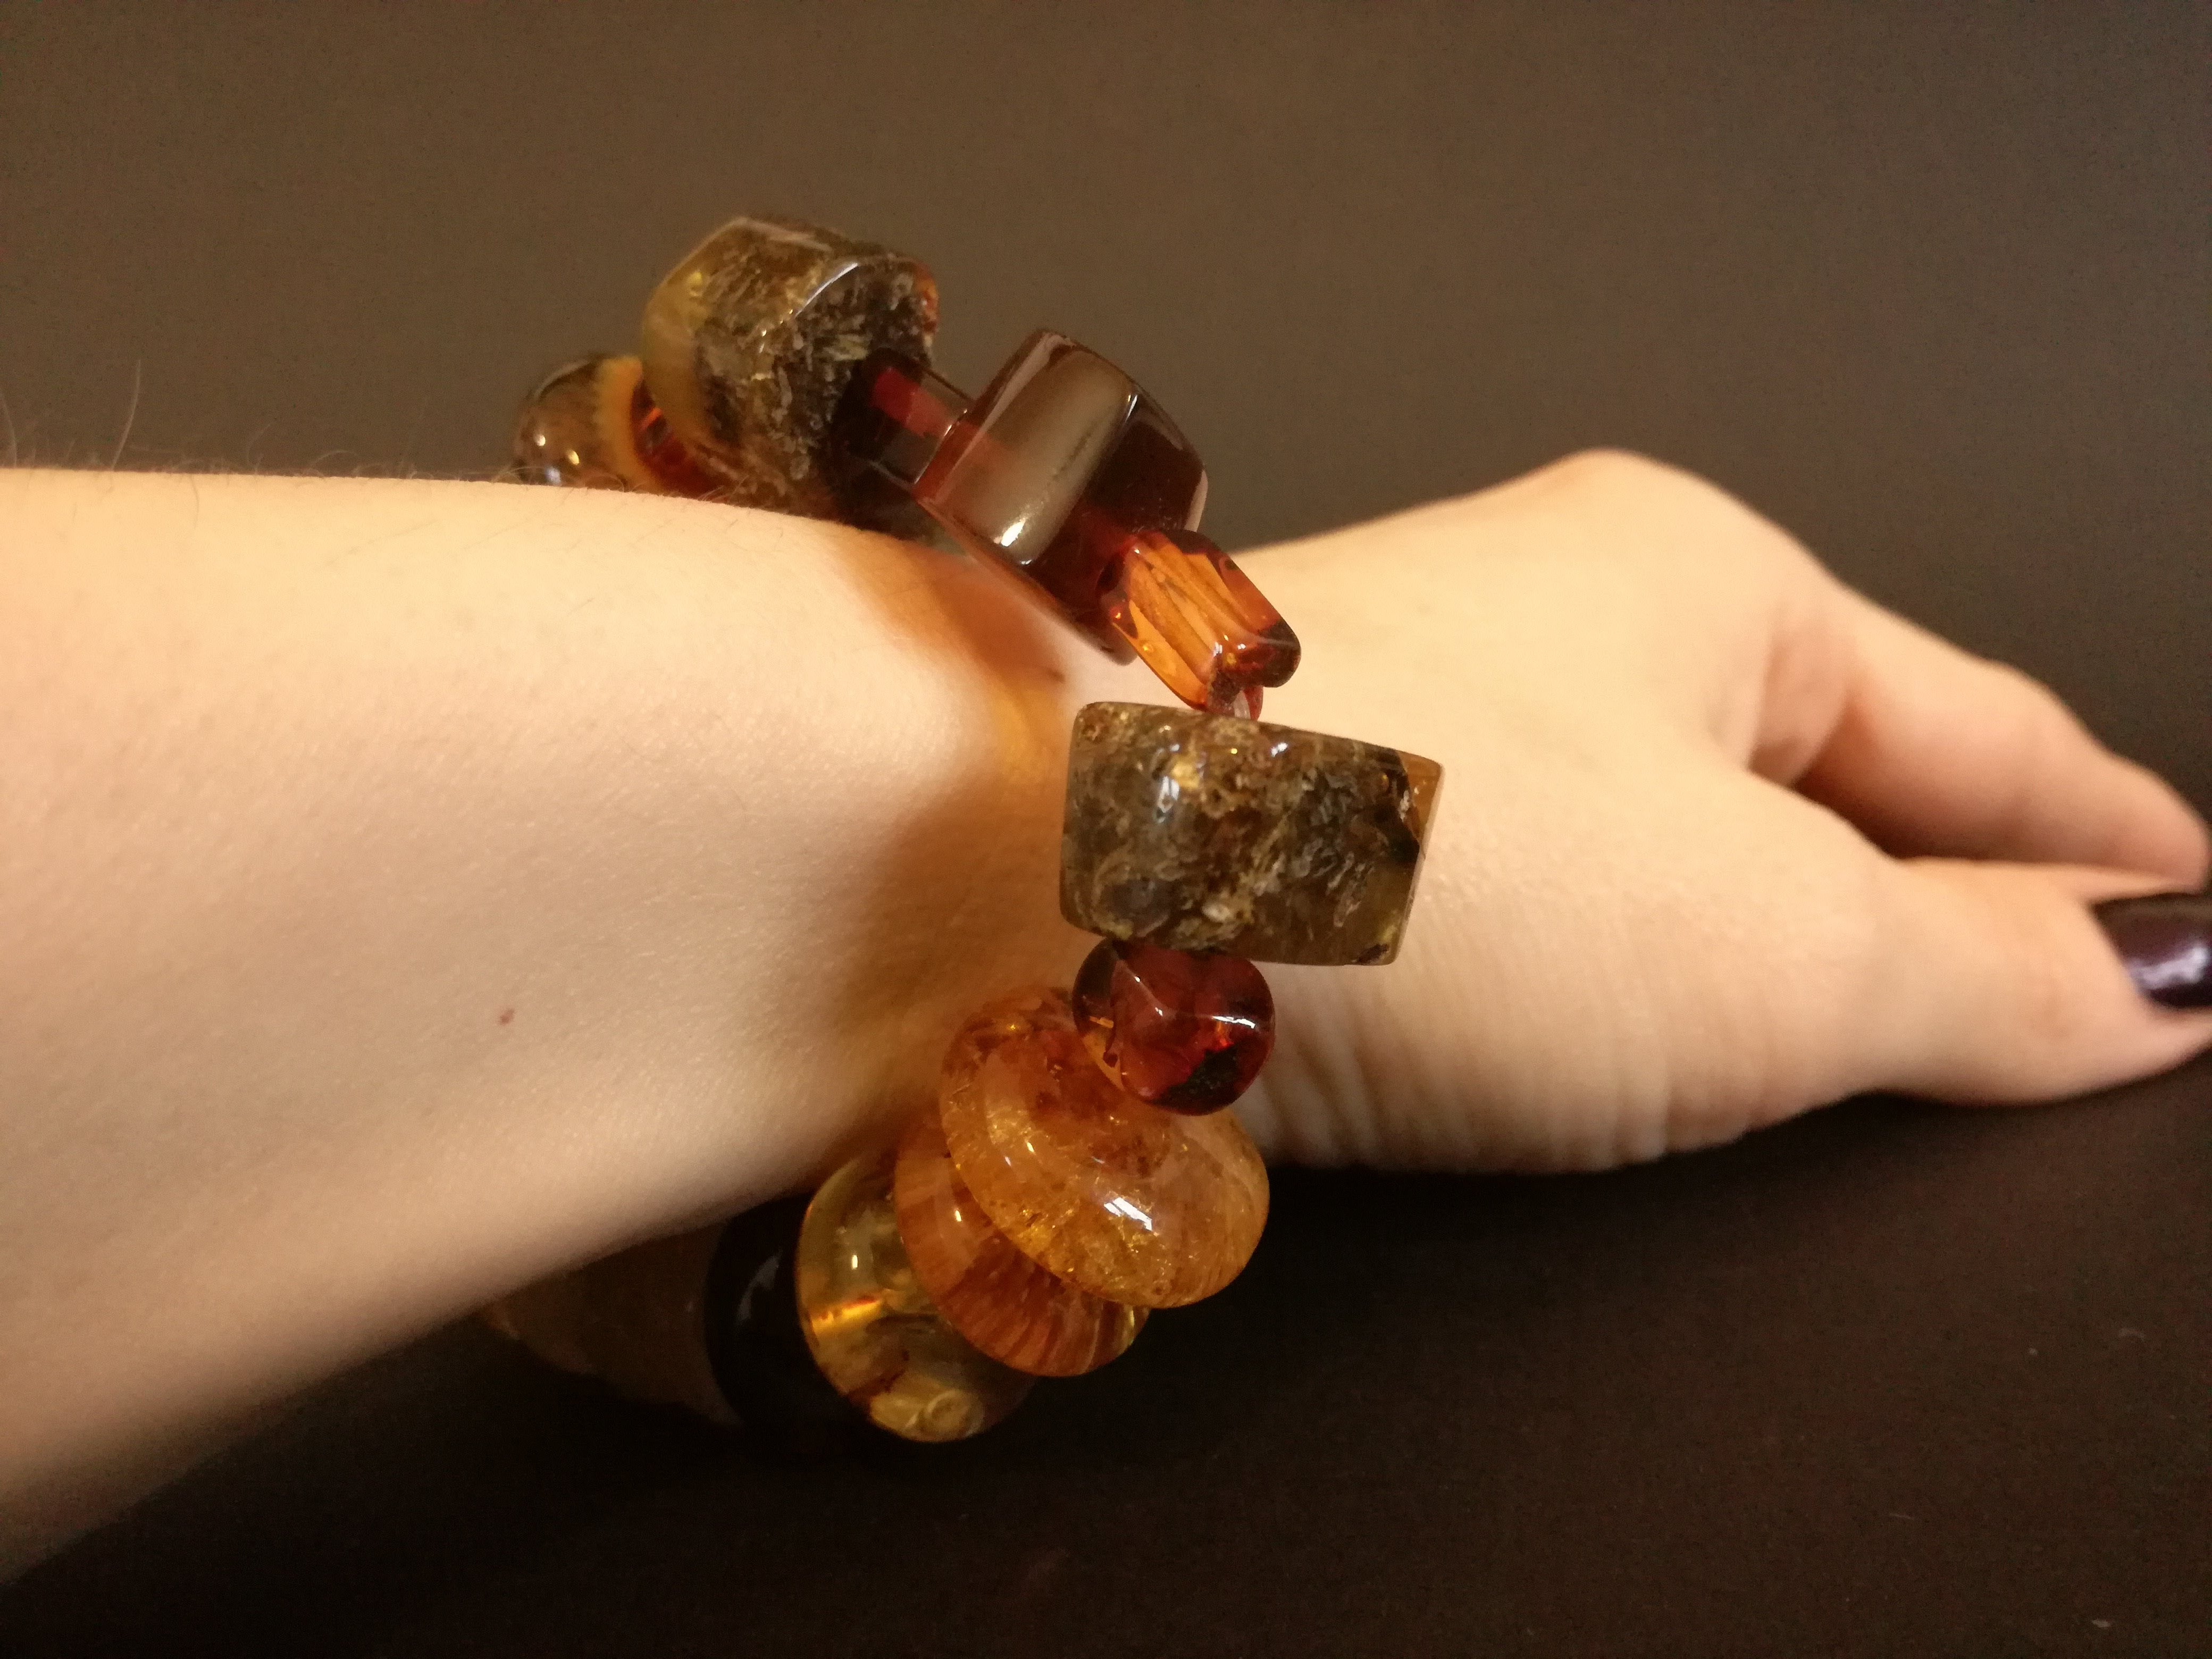 Genuine Handmade Amber Bracelet on Hand, Multicolor, big Size, irregular beads, For Her, Nursing Mums